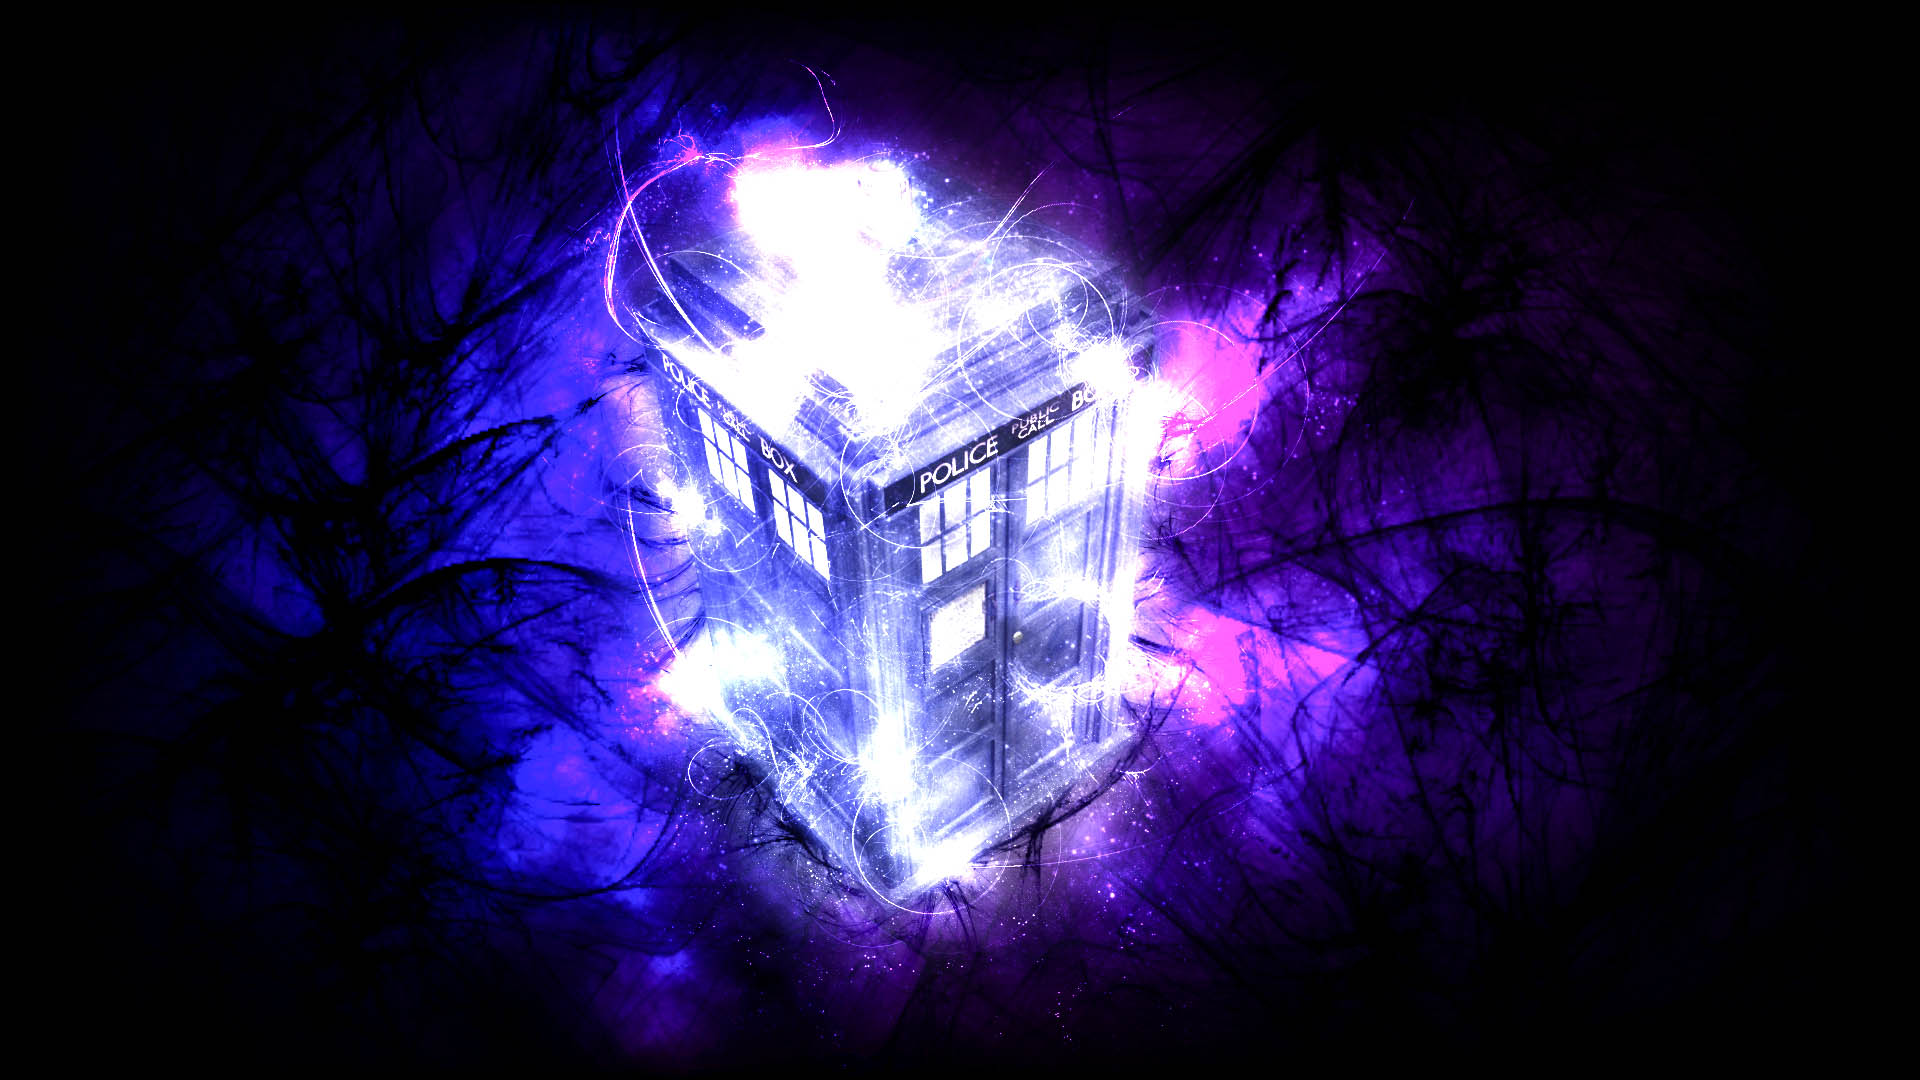 Doctor Iphone Wallpaper Doctor Who Tv Show New High Resolution Wallpapers All Hd